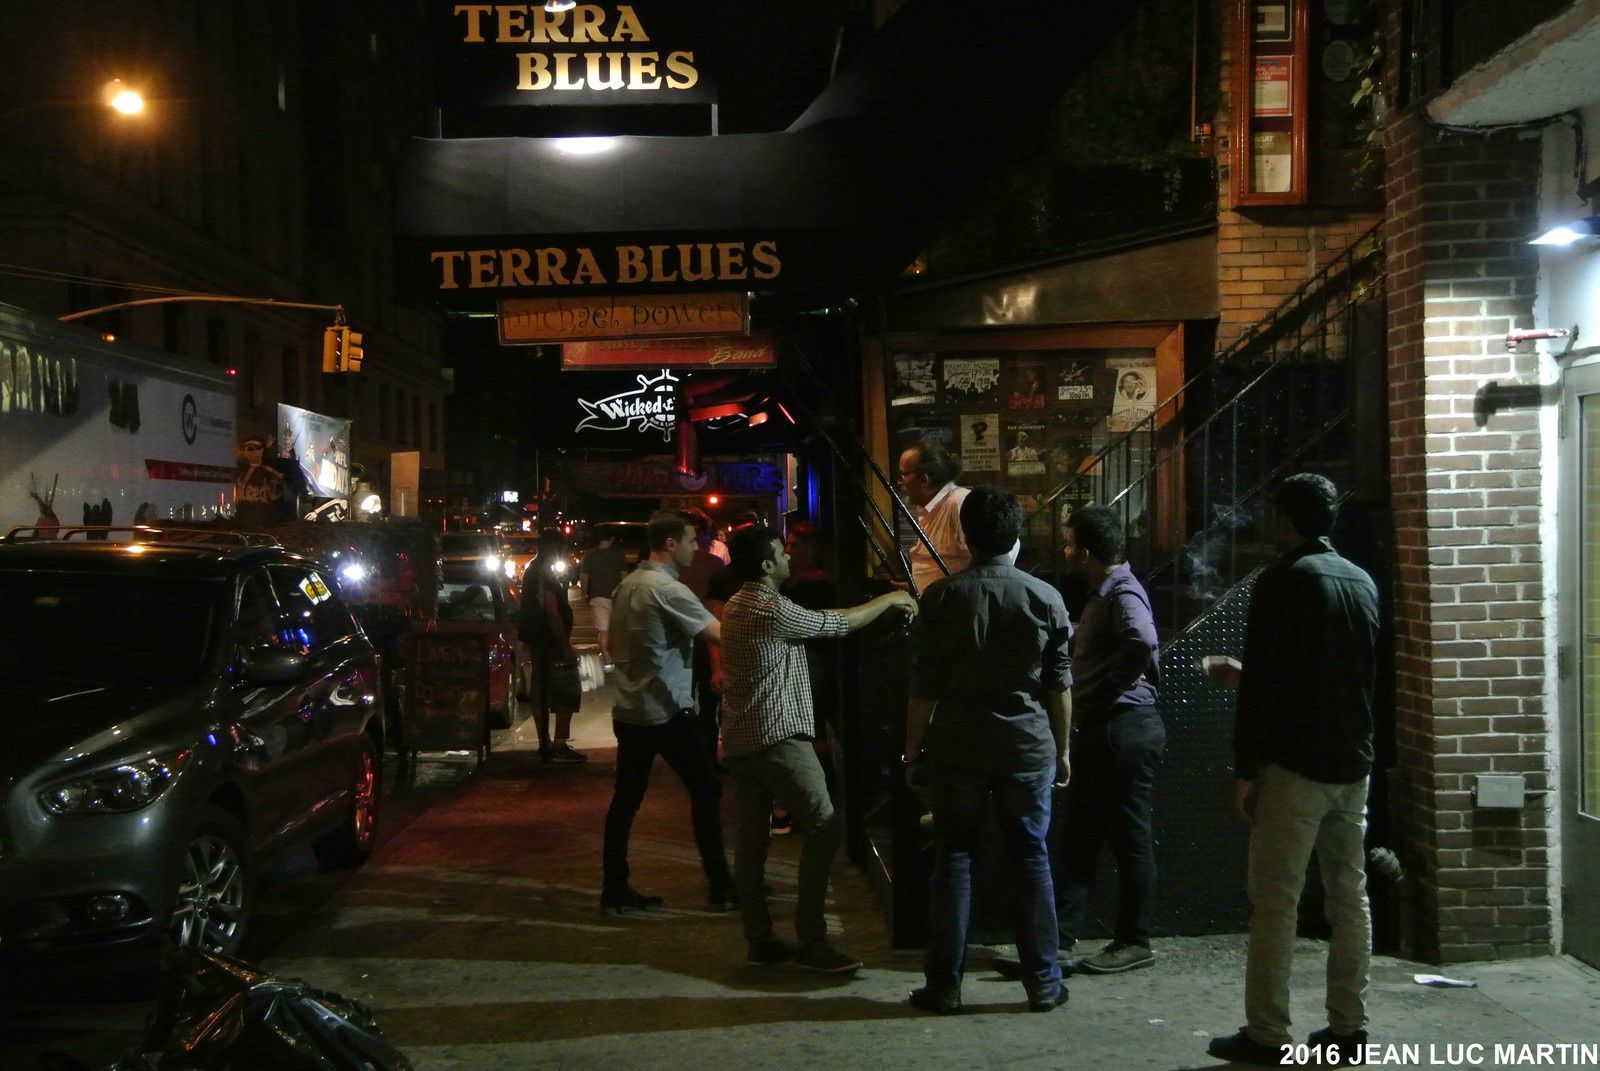 TERRA BLUES:LE MEILLEUR CLUB DE BLUES DE NEW-YORK